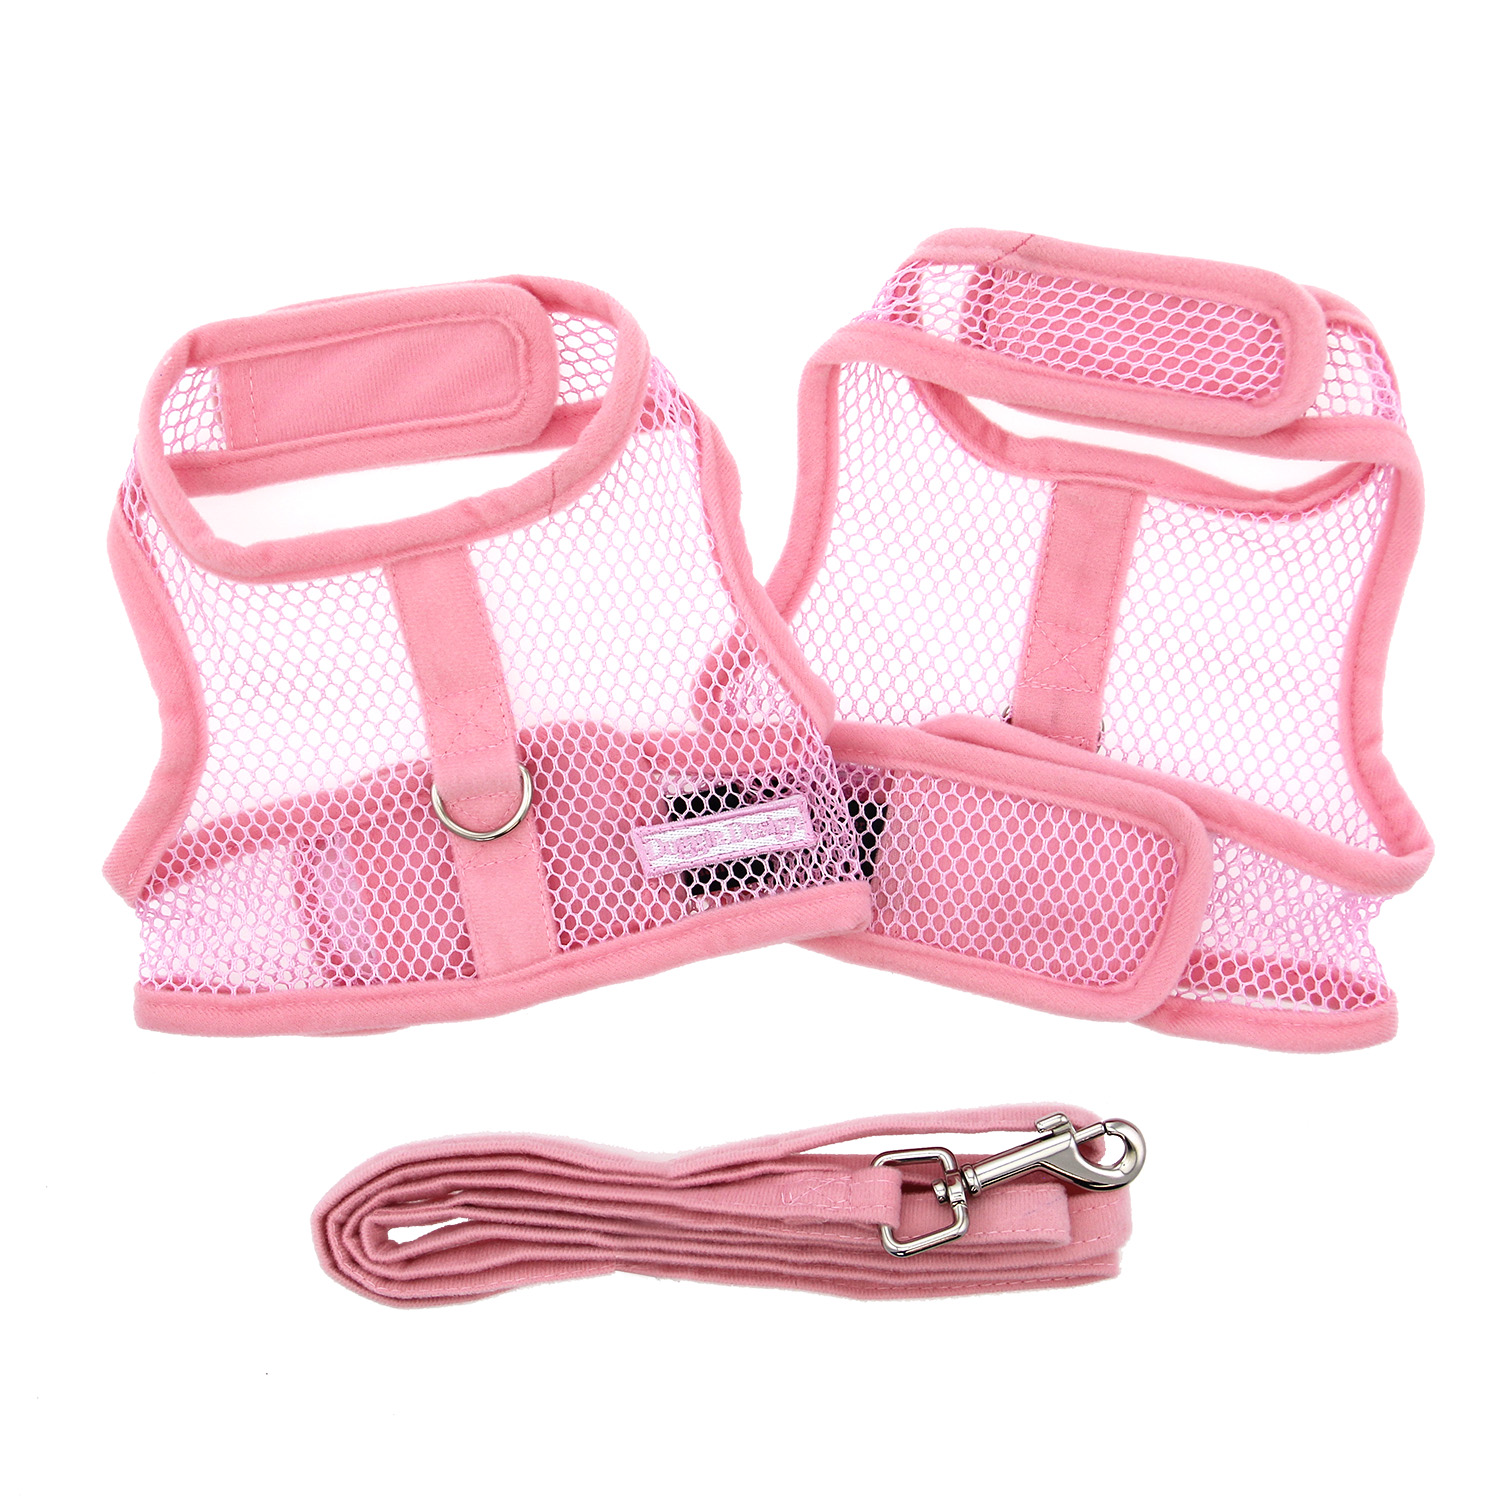 Doggie Design Cool Mesh Dog Harness with Matching Leash, Solid Pink, Small